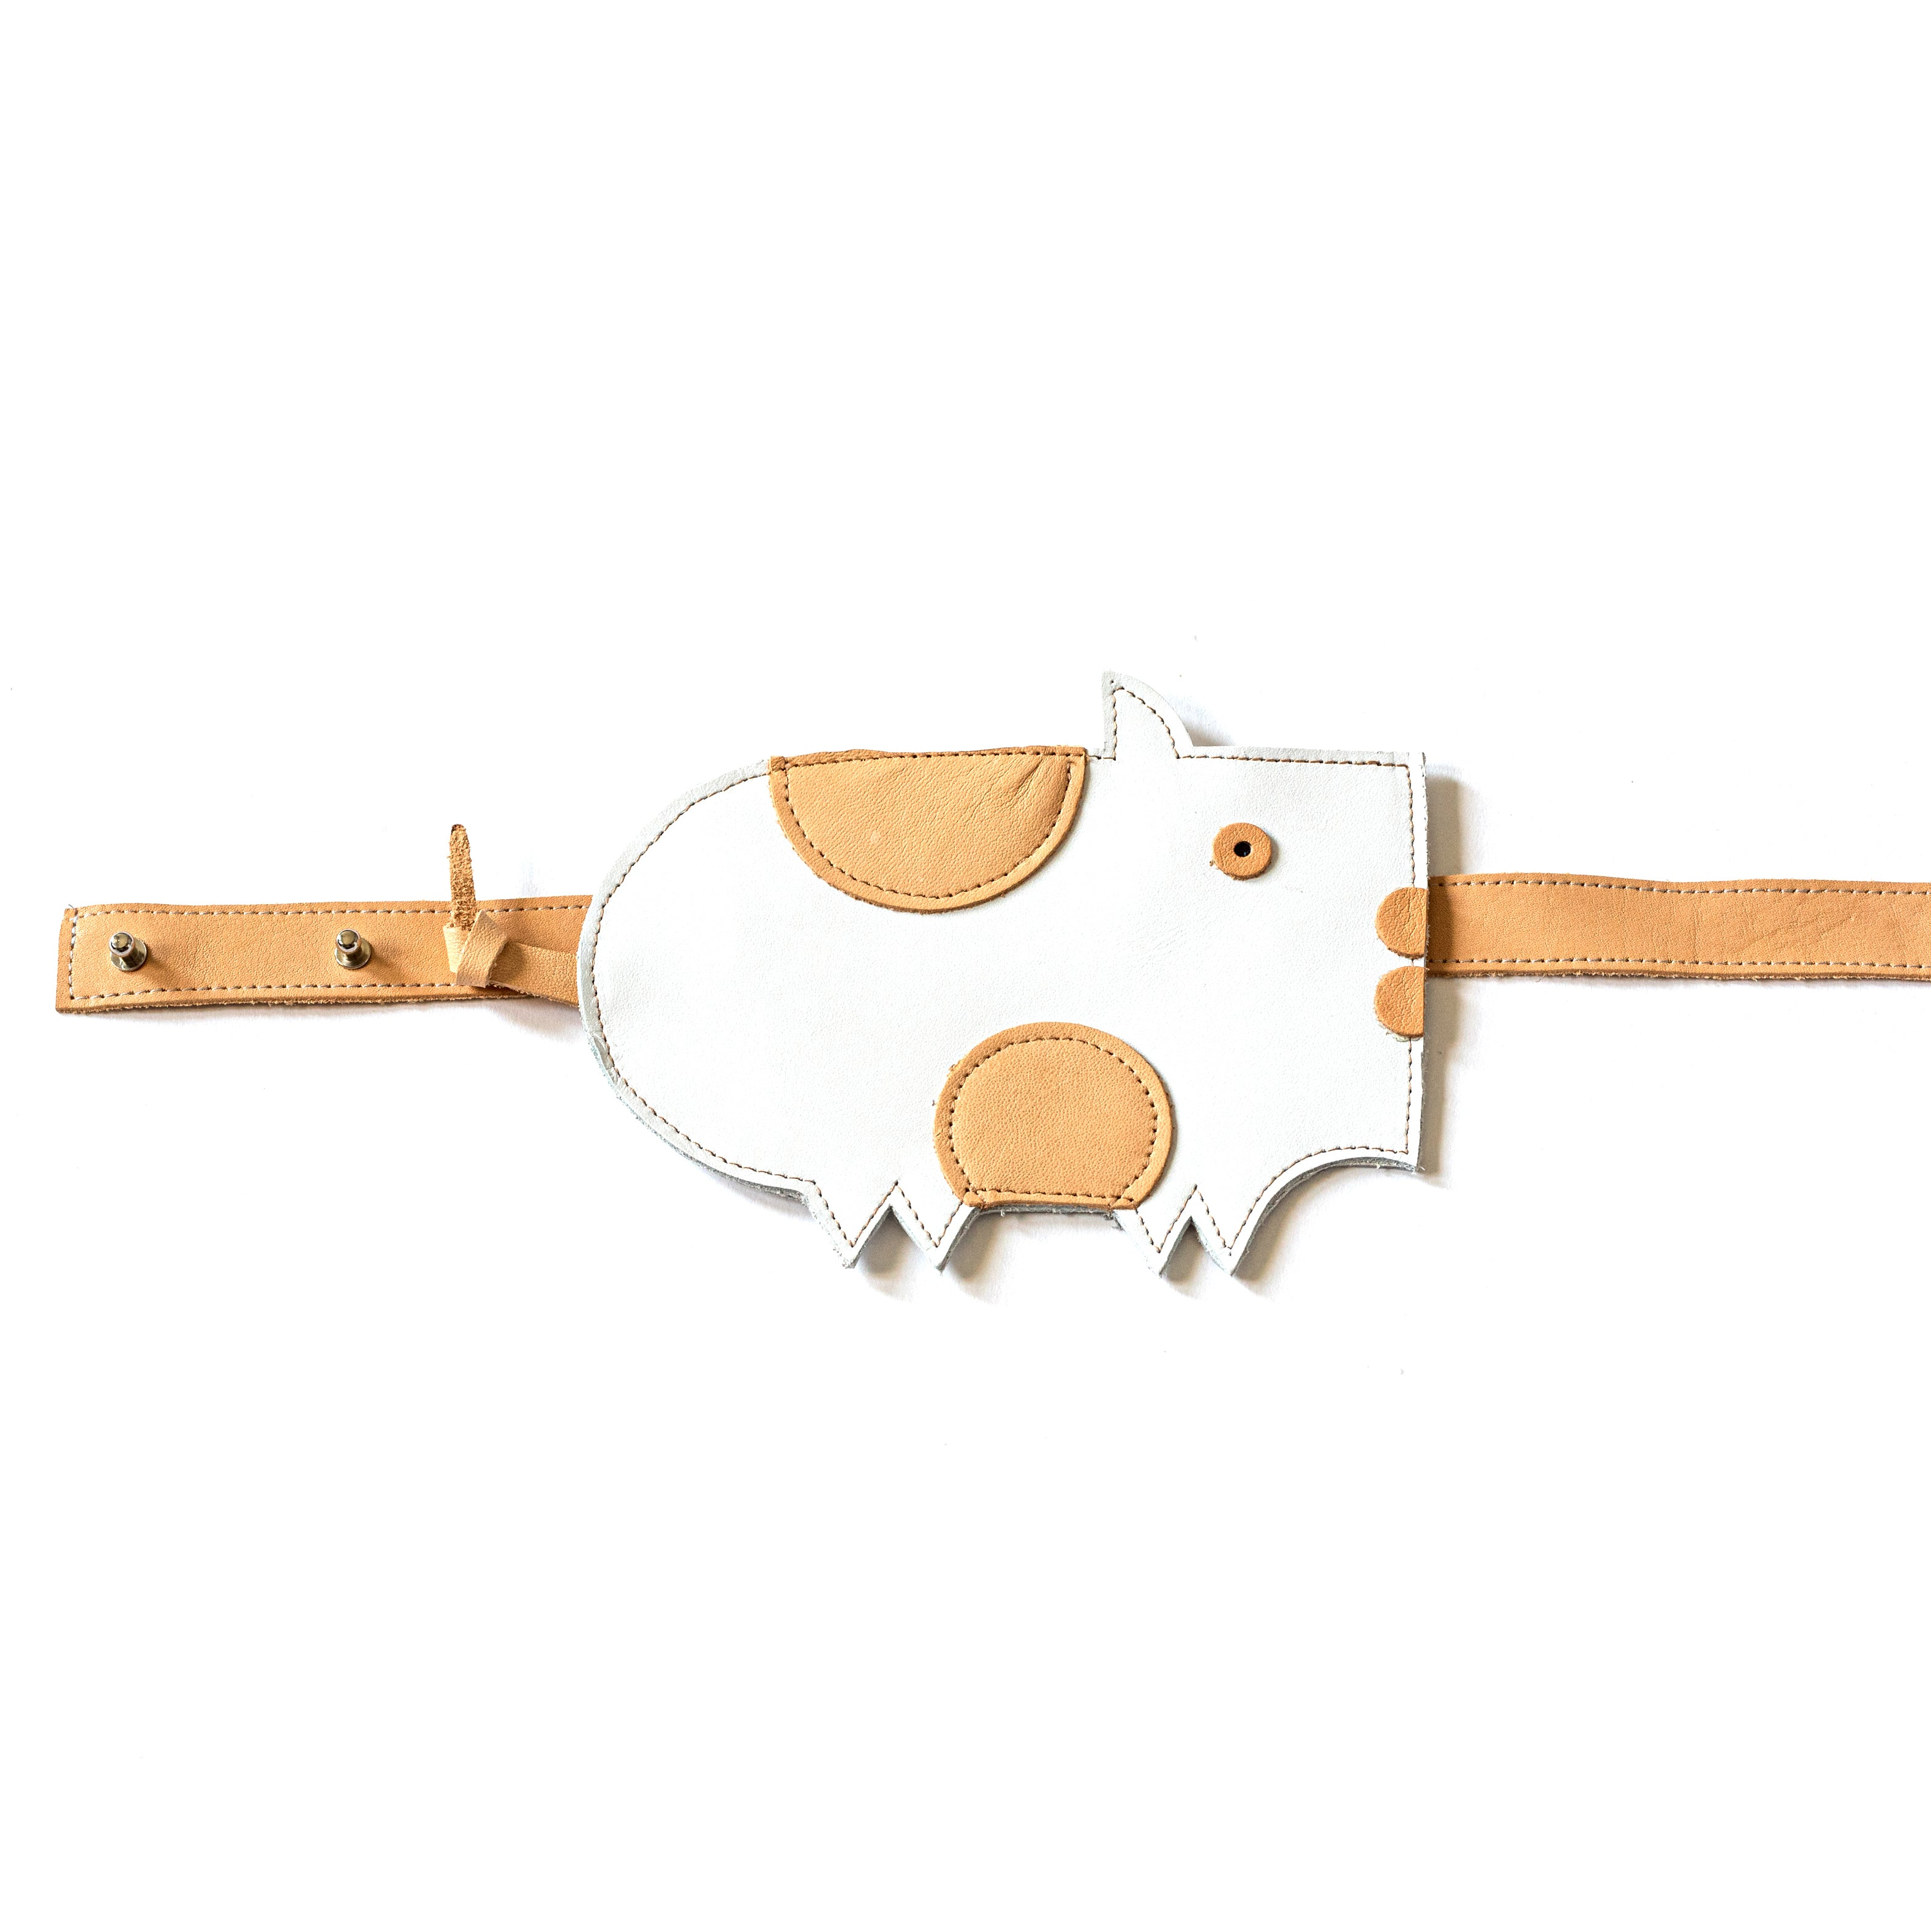 Eperfa leather belt bag pig white